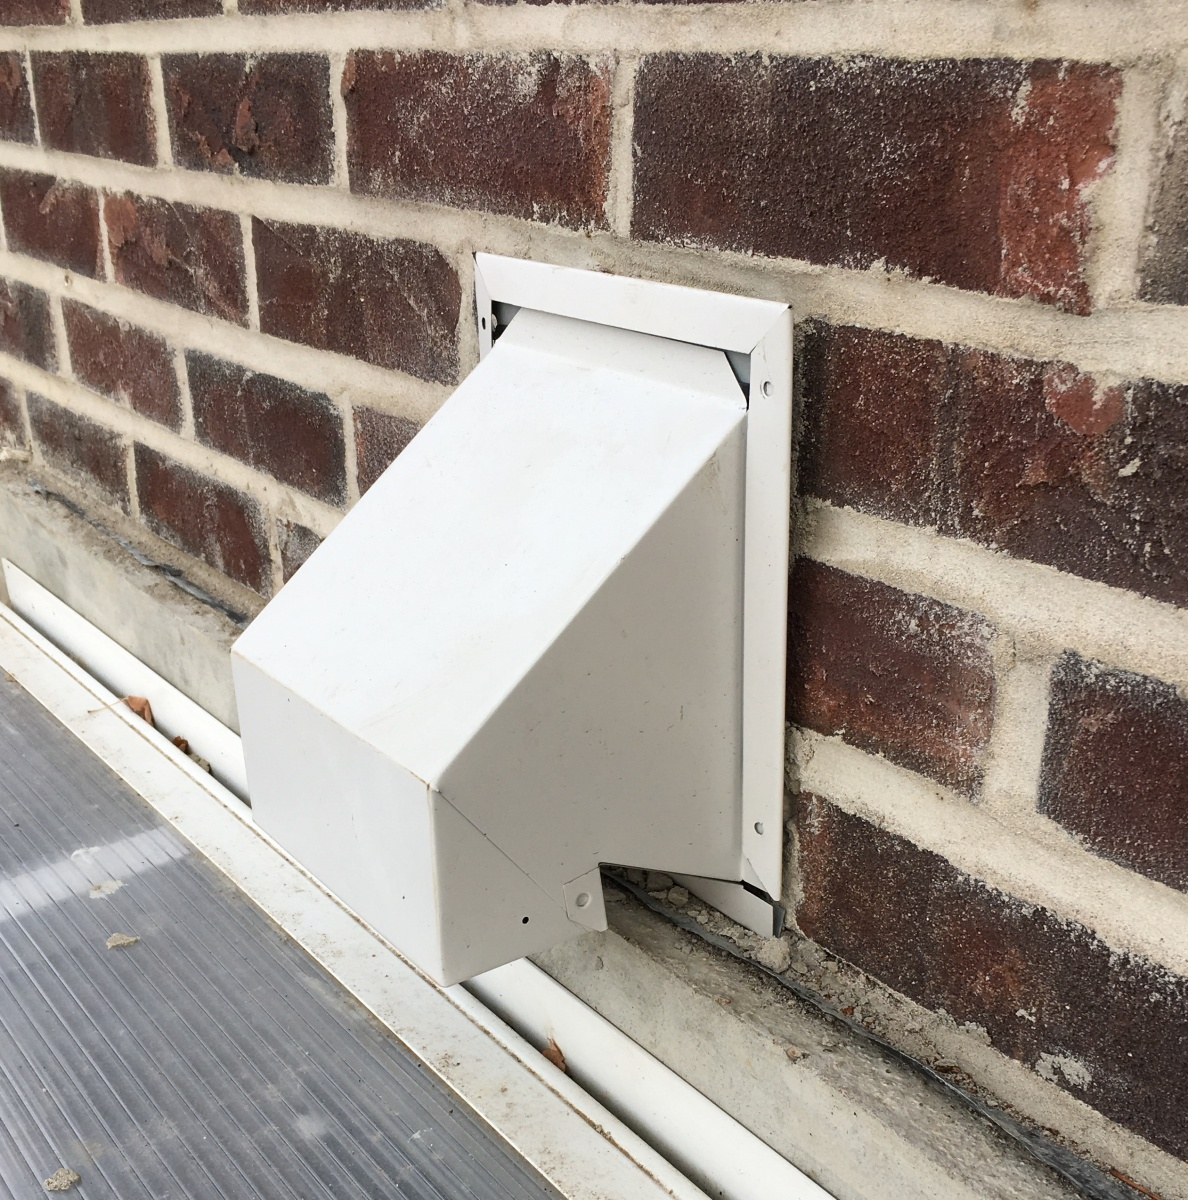 Insulating bathroom fan to cold exterior-img_6916.jpg